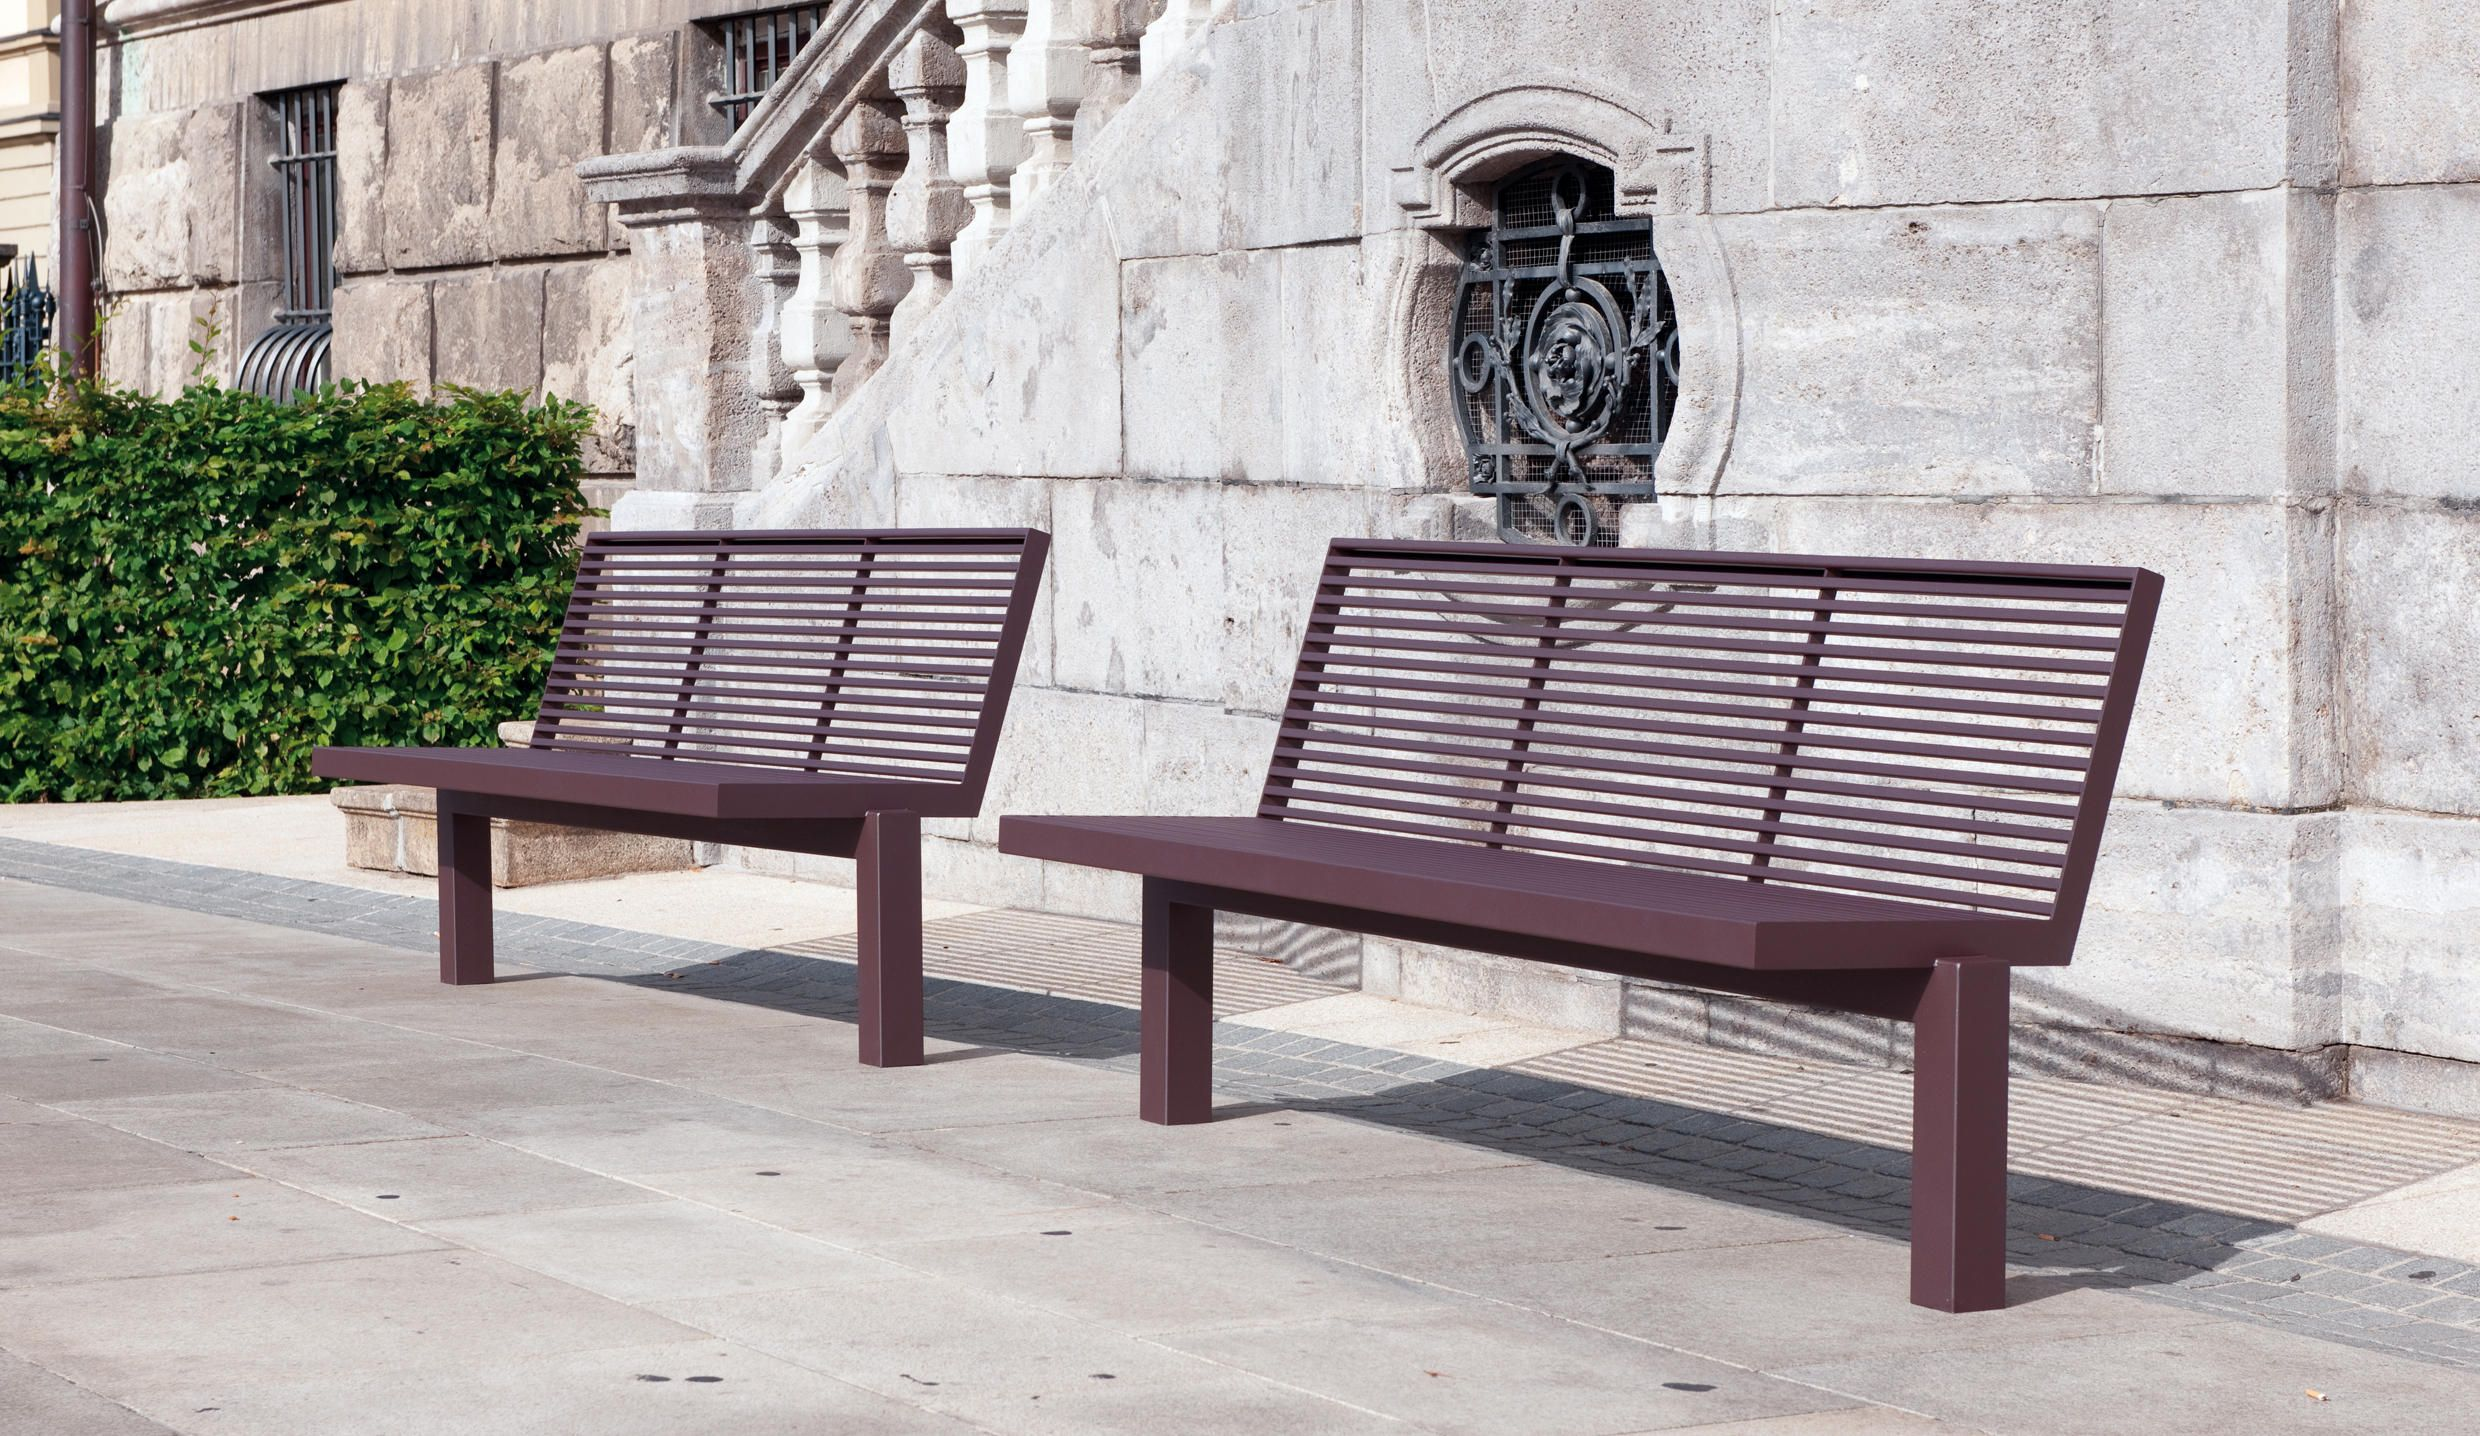 SICORUM M 400 BENCH WITHOUT ARMRESTS - Designer Exterior benches ...